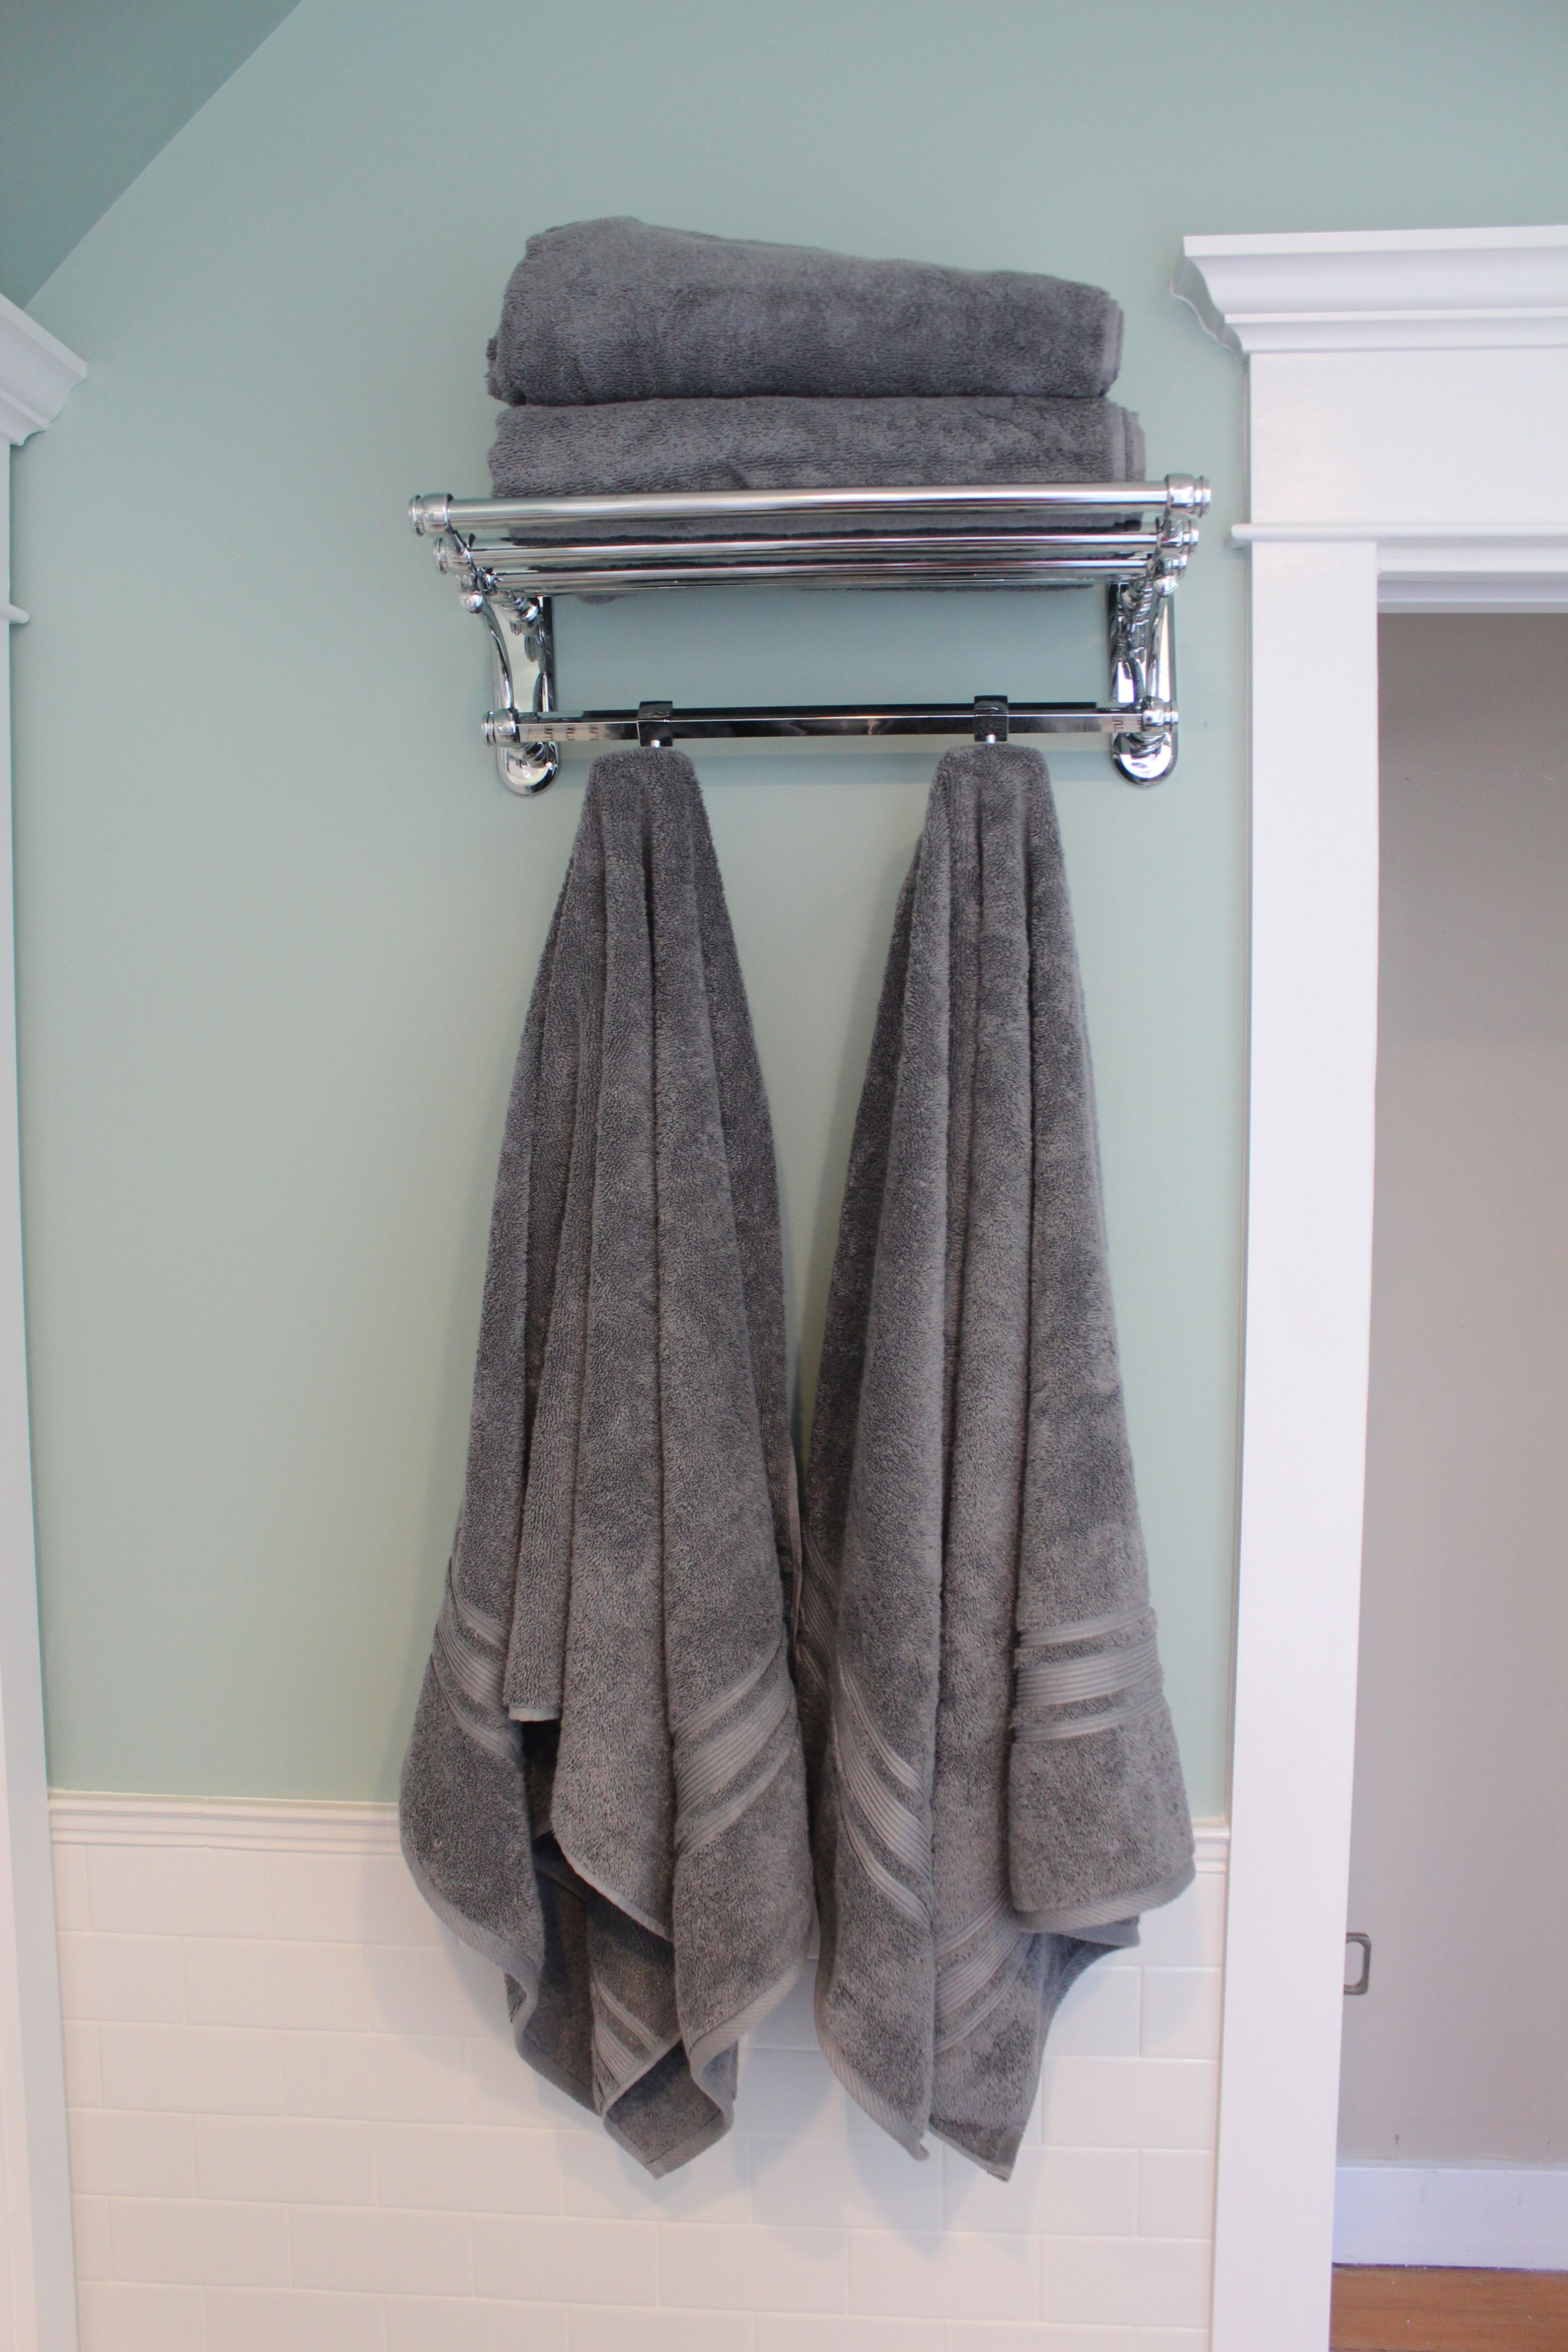 Train rack for storing towels so much more efficient than a